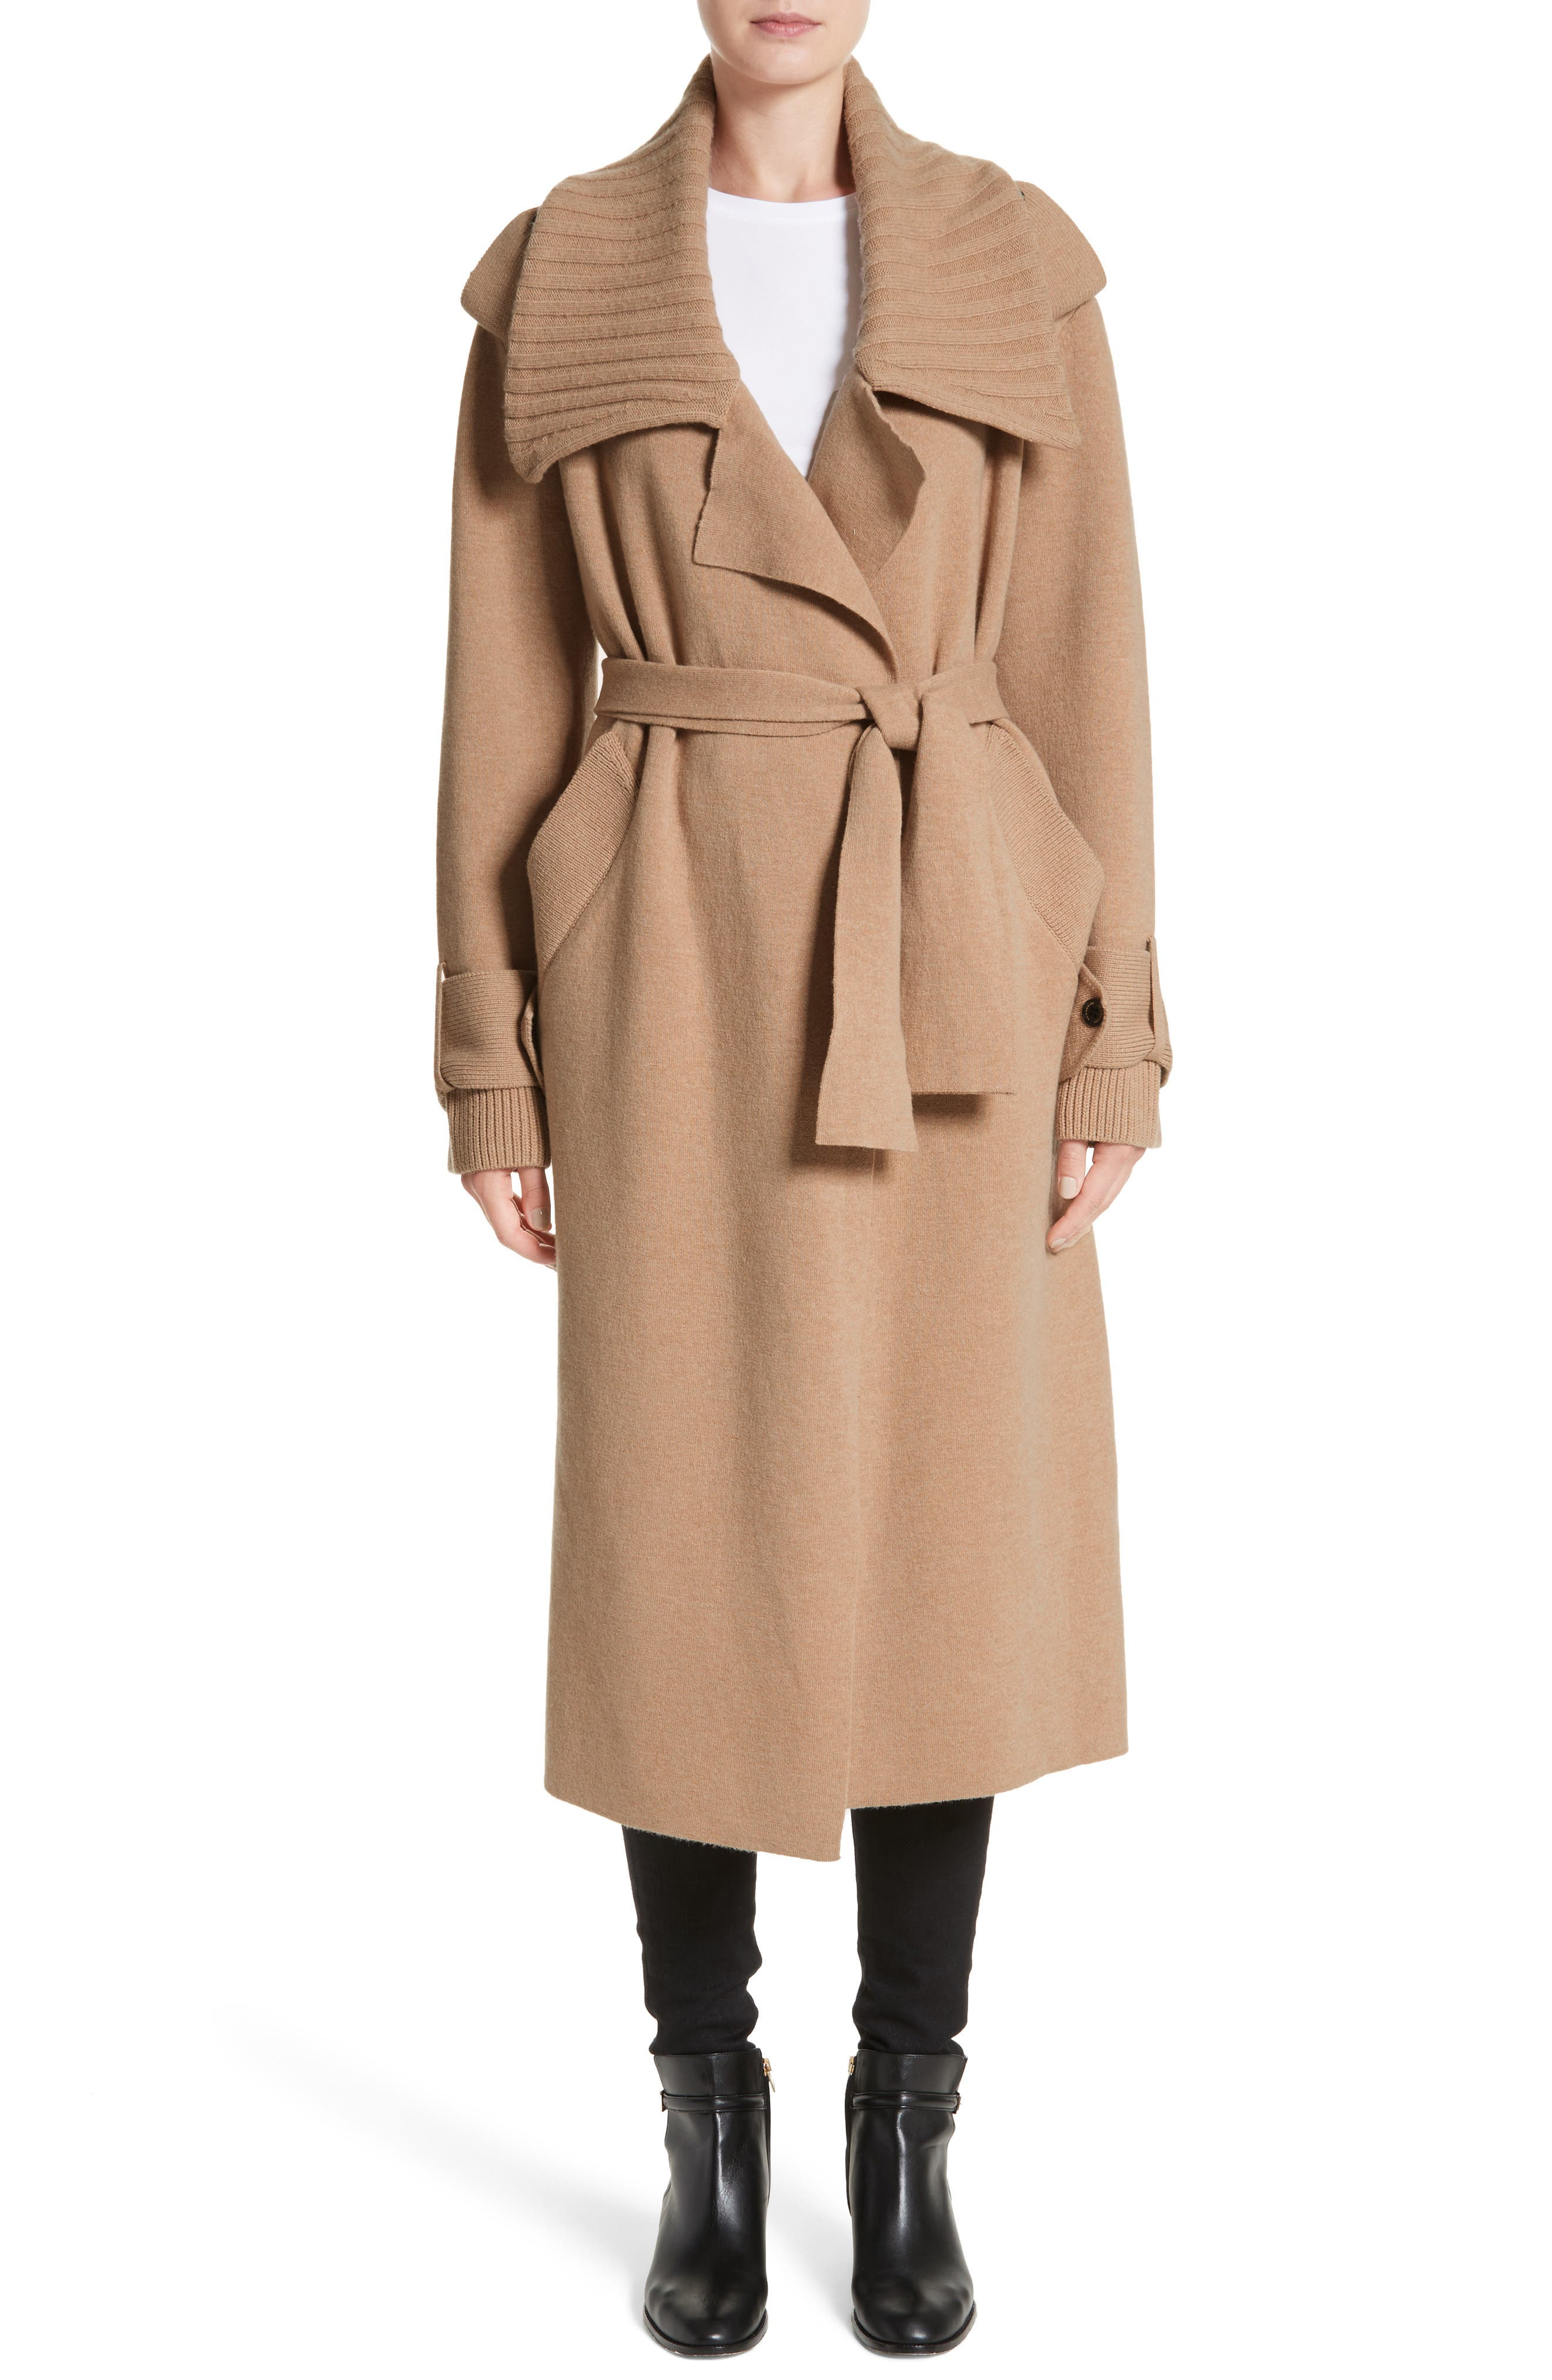 BURBERRY, Piota Wool Blend Knit Trench Coat, Main thumbnail 1, color, CAMEL